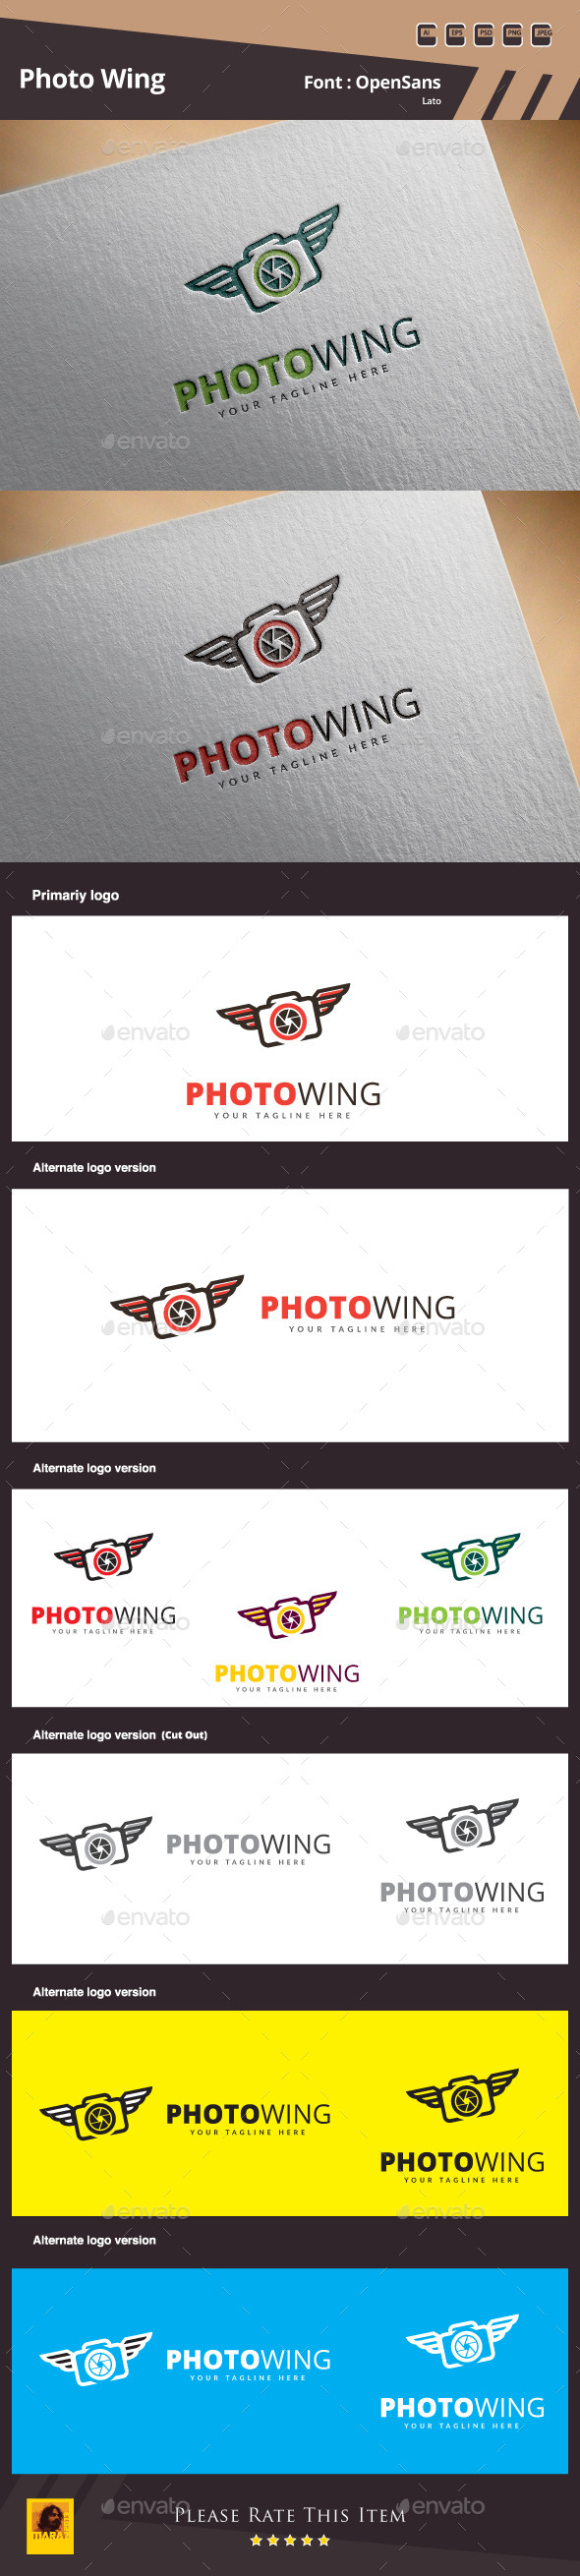 GraphicRiver Photo Wing Logo Template 10945765